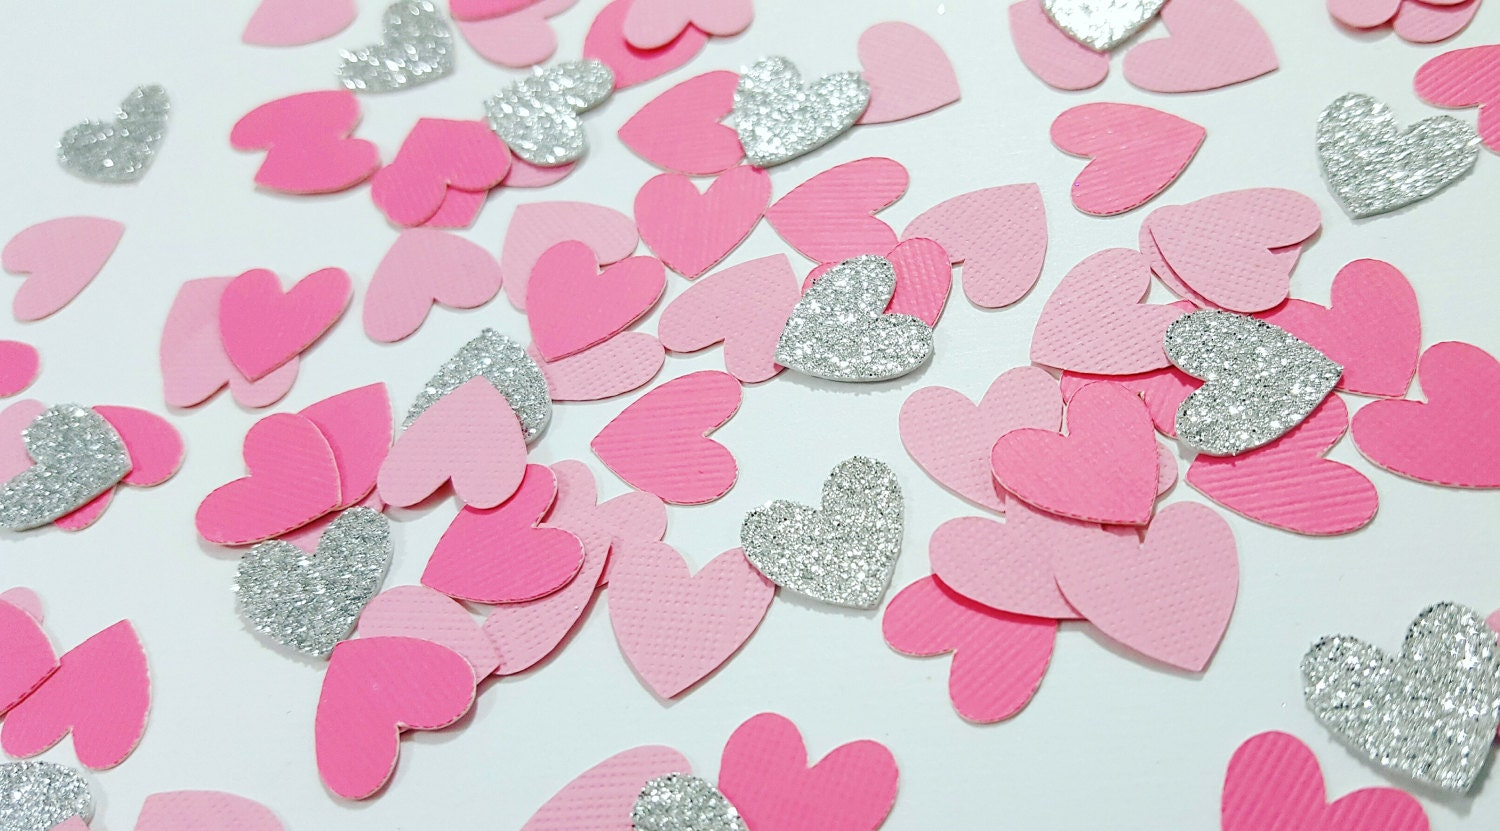 Light Pink, Medium Pink, Silver or Gold Glitter Heart Confetti ...